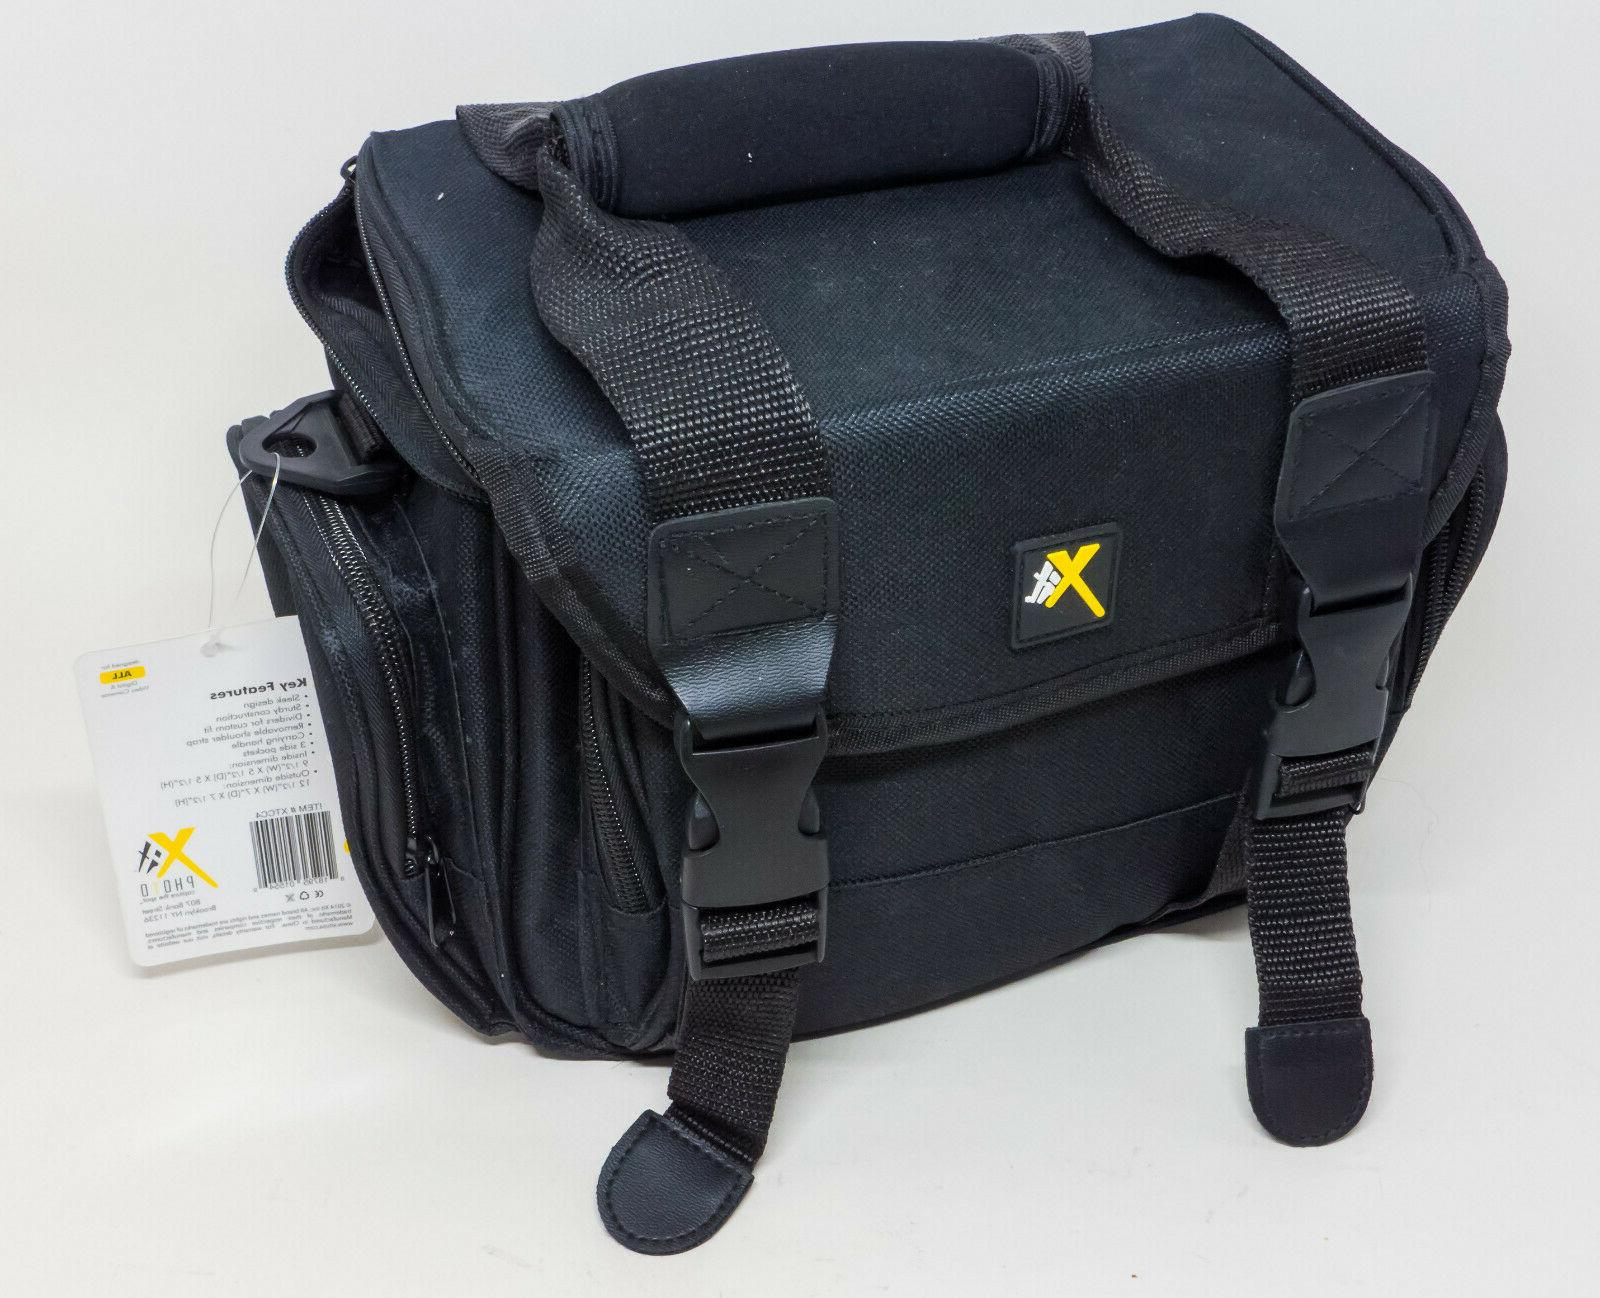 Xit Deluxe Digital Camera/Video Padded Carrying Case